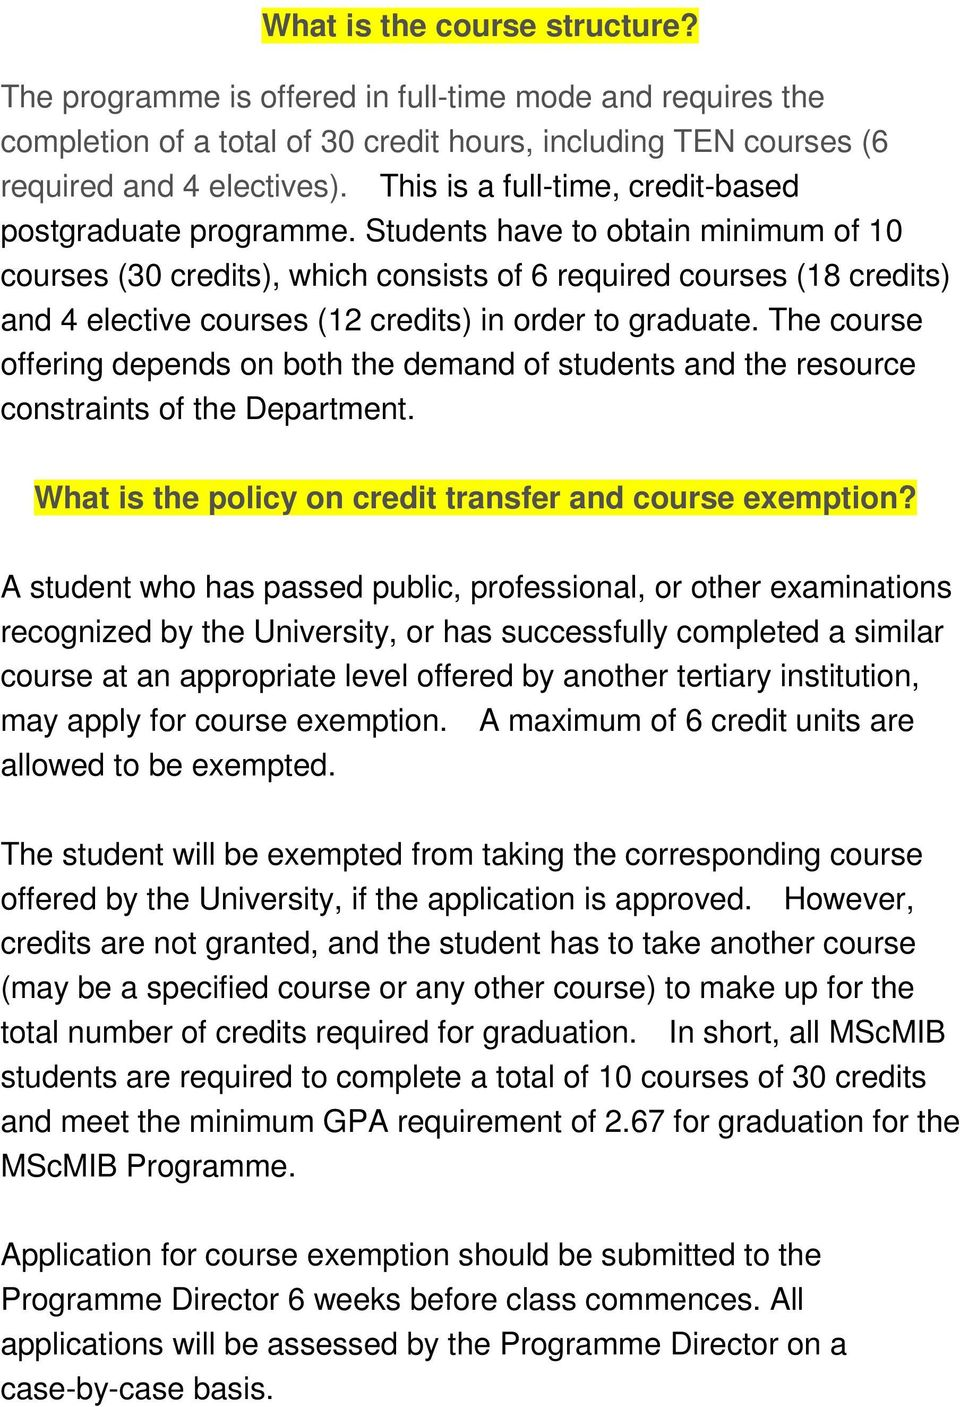 Students have to obtain minimum of 10 courses (30 credits), which consists of 6 required courses (18 credits) and 4 elective courses (12 credits) in order to graduate.